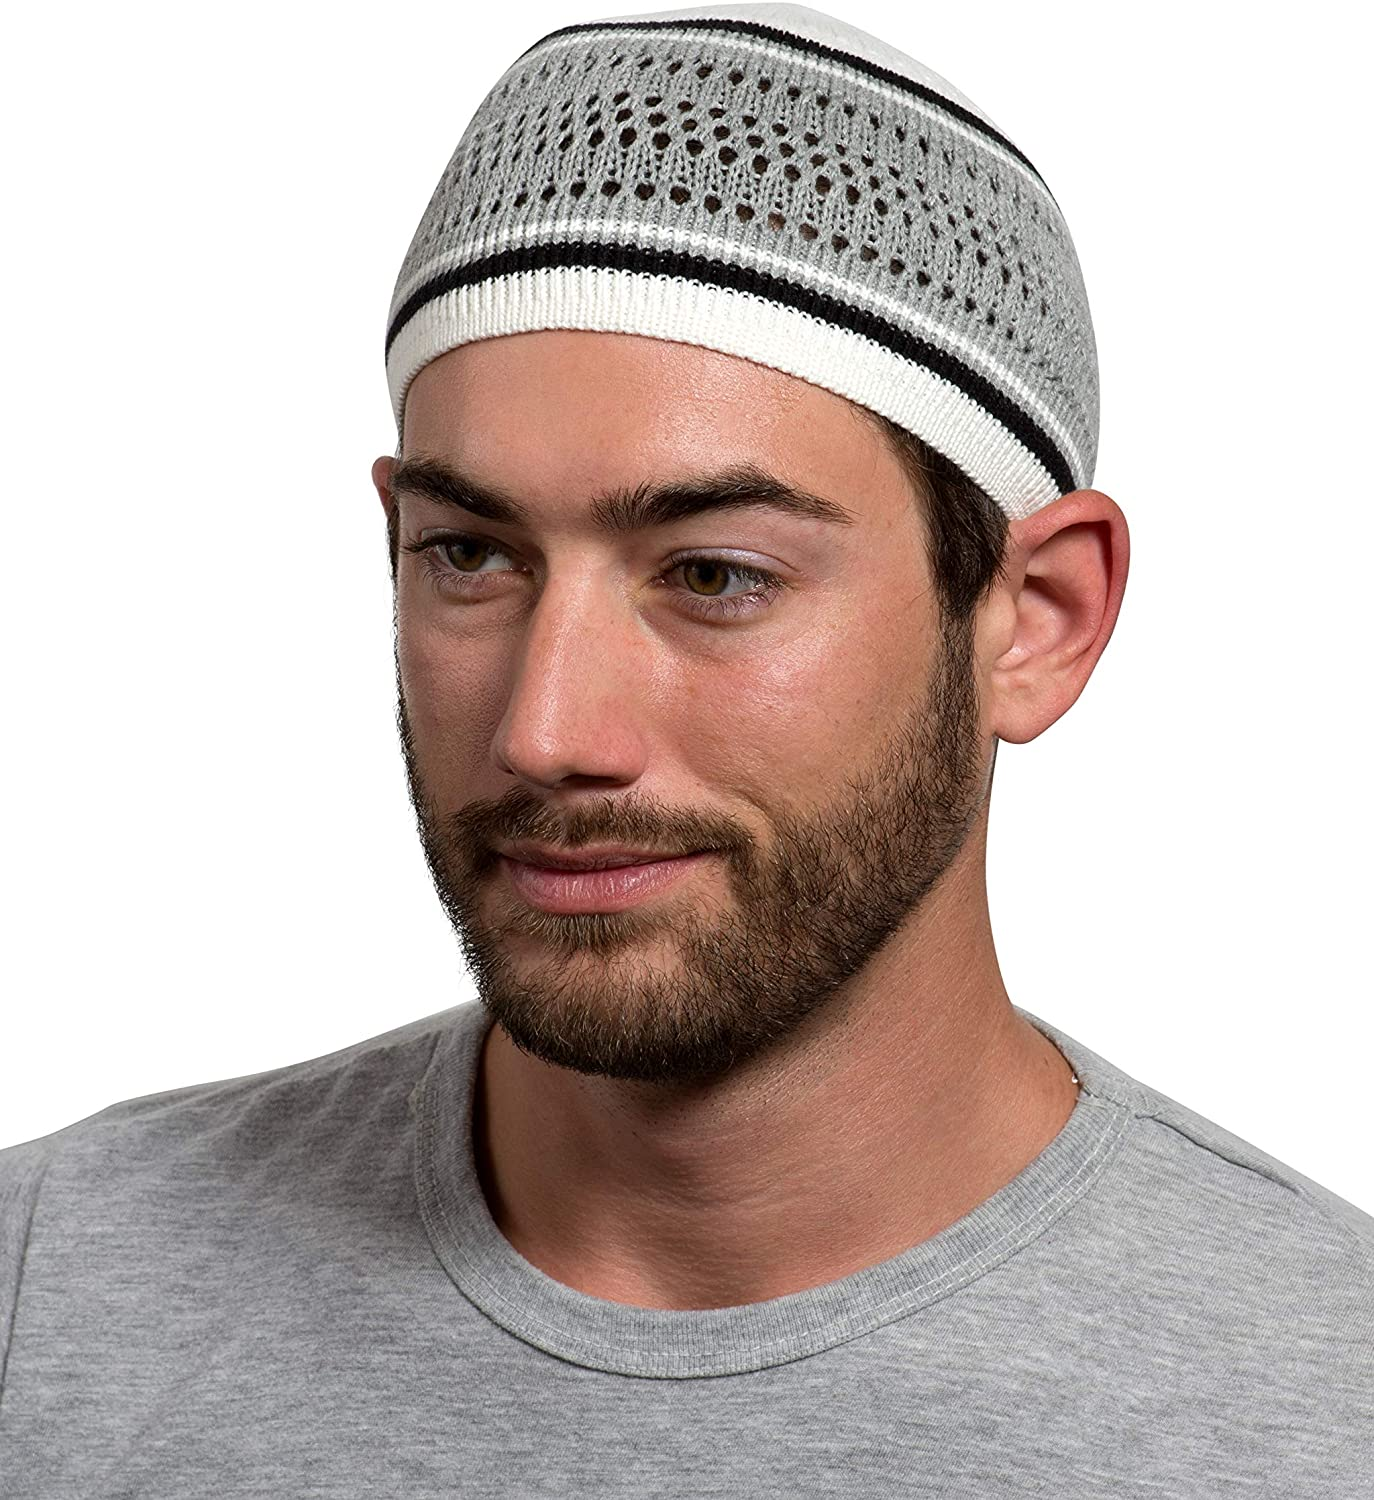 100% Cotton Skull Cap Chemo Kufi Under Helmet Beanie Hats in Solid Colors and Stripes